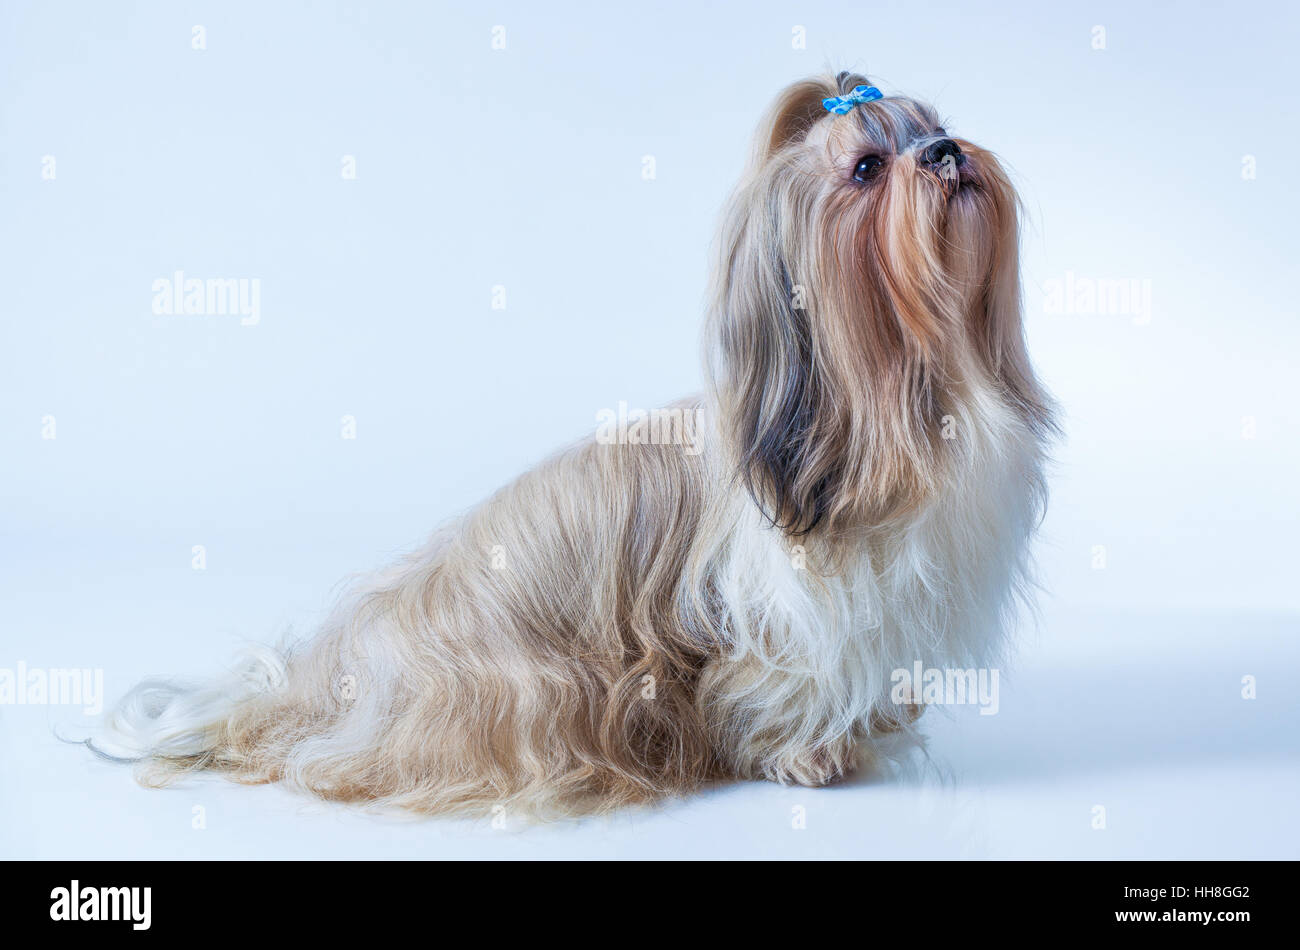 Shih Tzu Dog With Long Hair Sitting And Looking Aside On White And